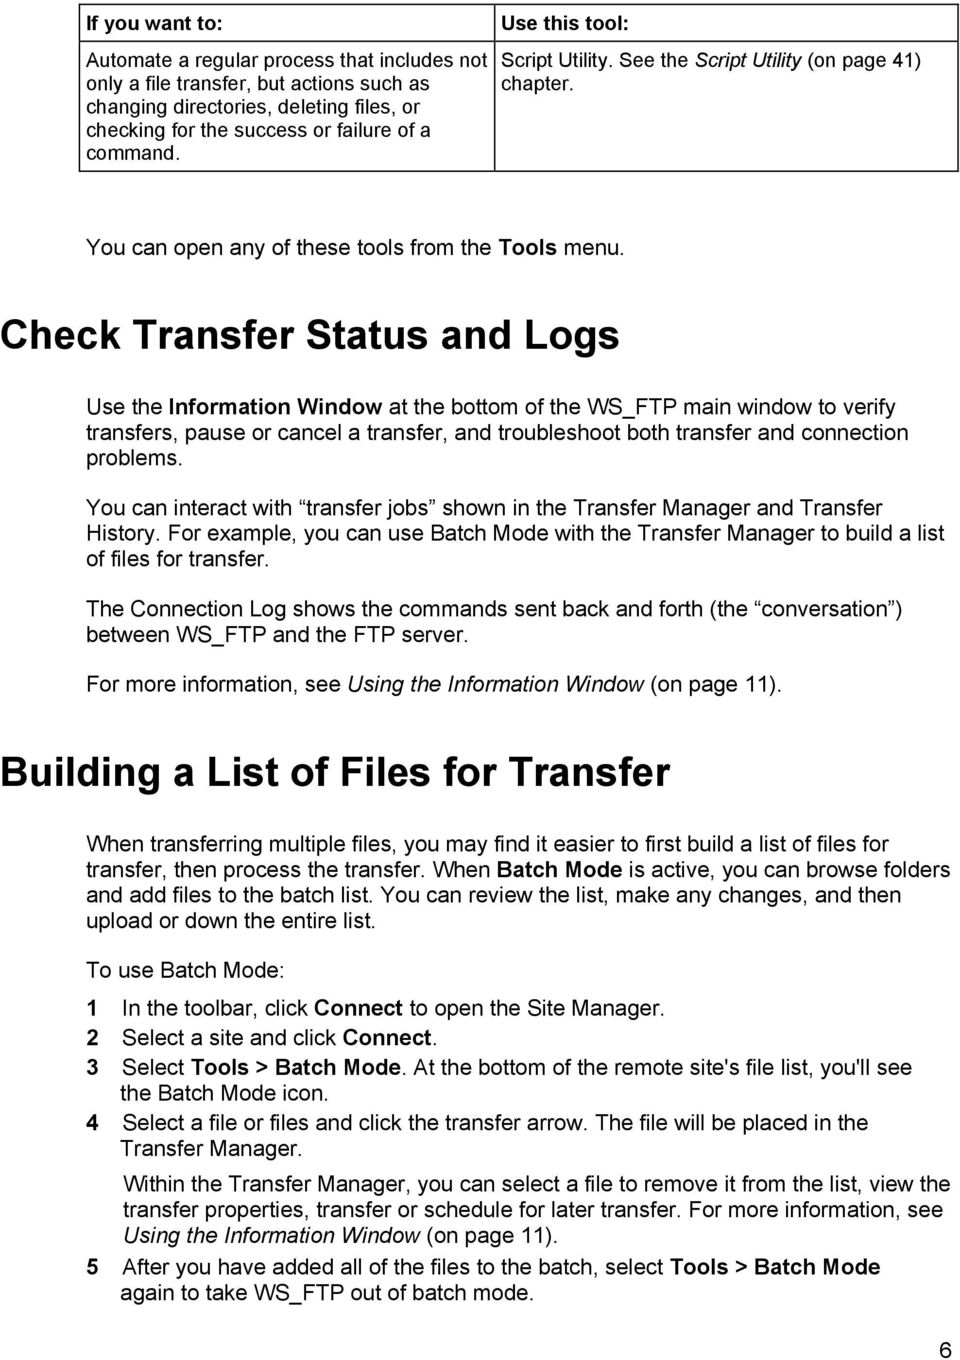 Check Transfer Status and Logs Use the Information Window at the bottom of the WS_FTP main window to verify transfers, pause or cancel a transfer, and troubleshoot both transfer and connection